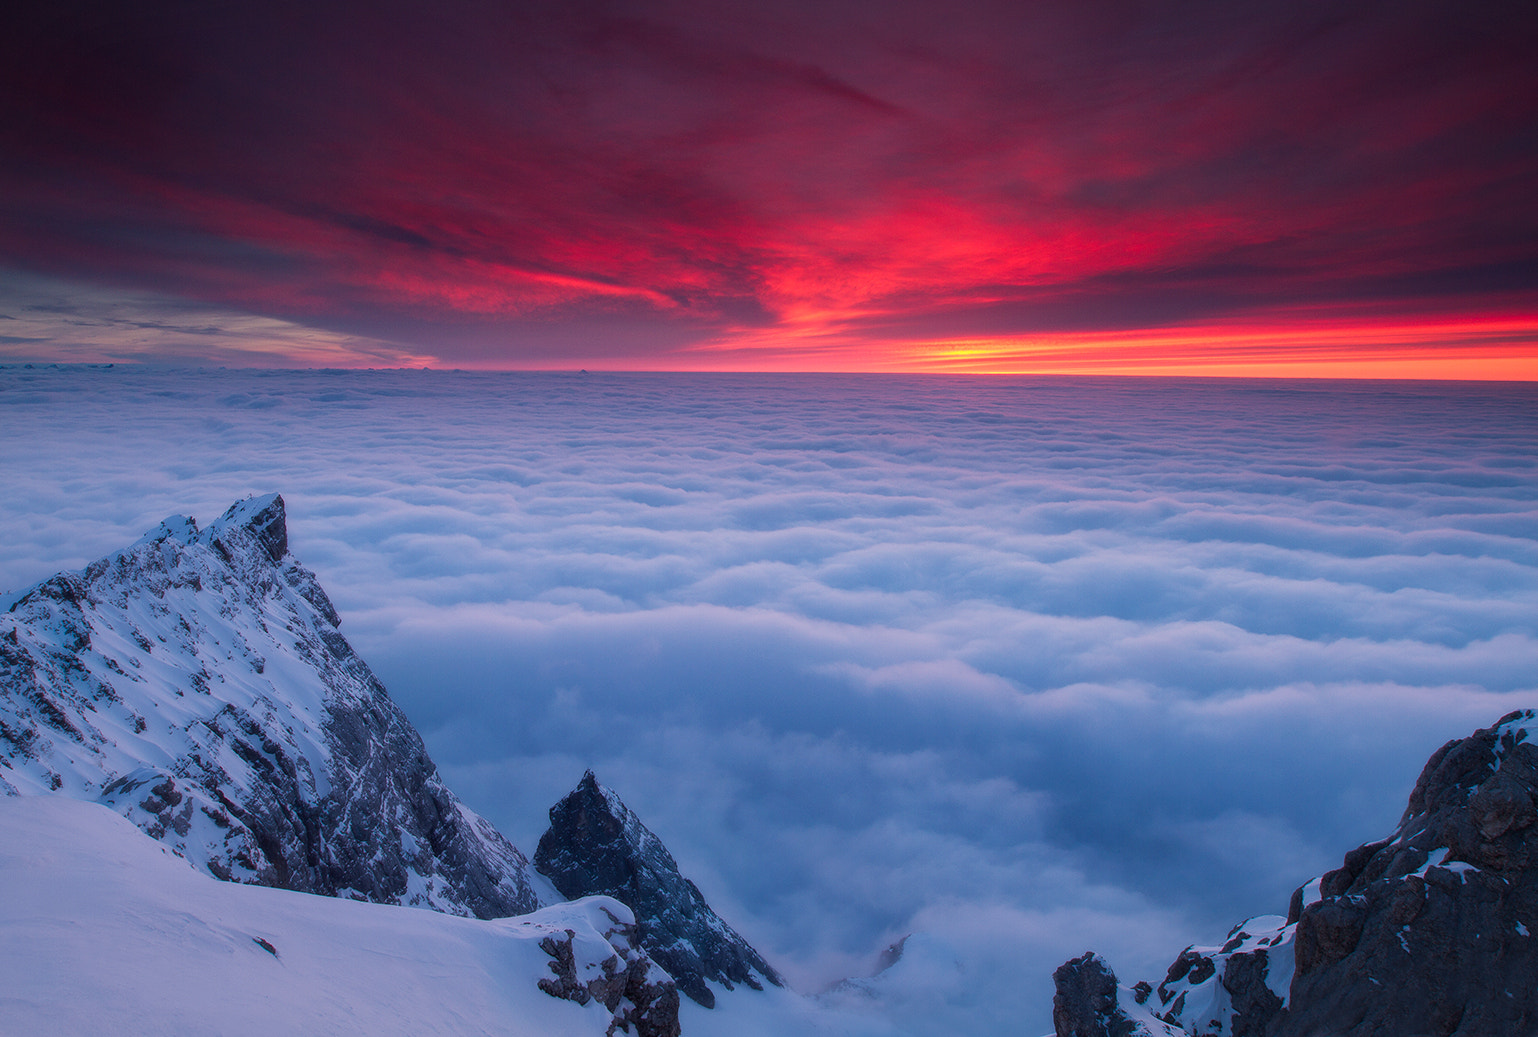 Photograph Above a Sea of Clouds by Brad Hays on 500px